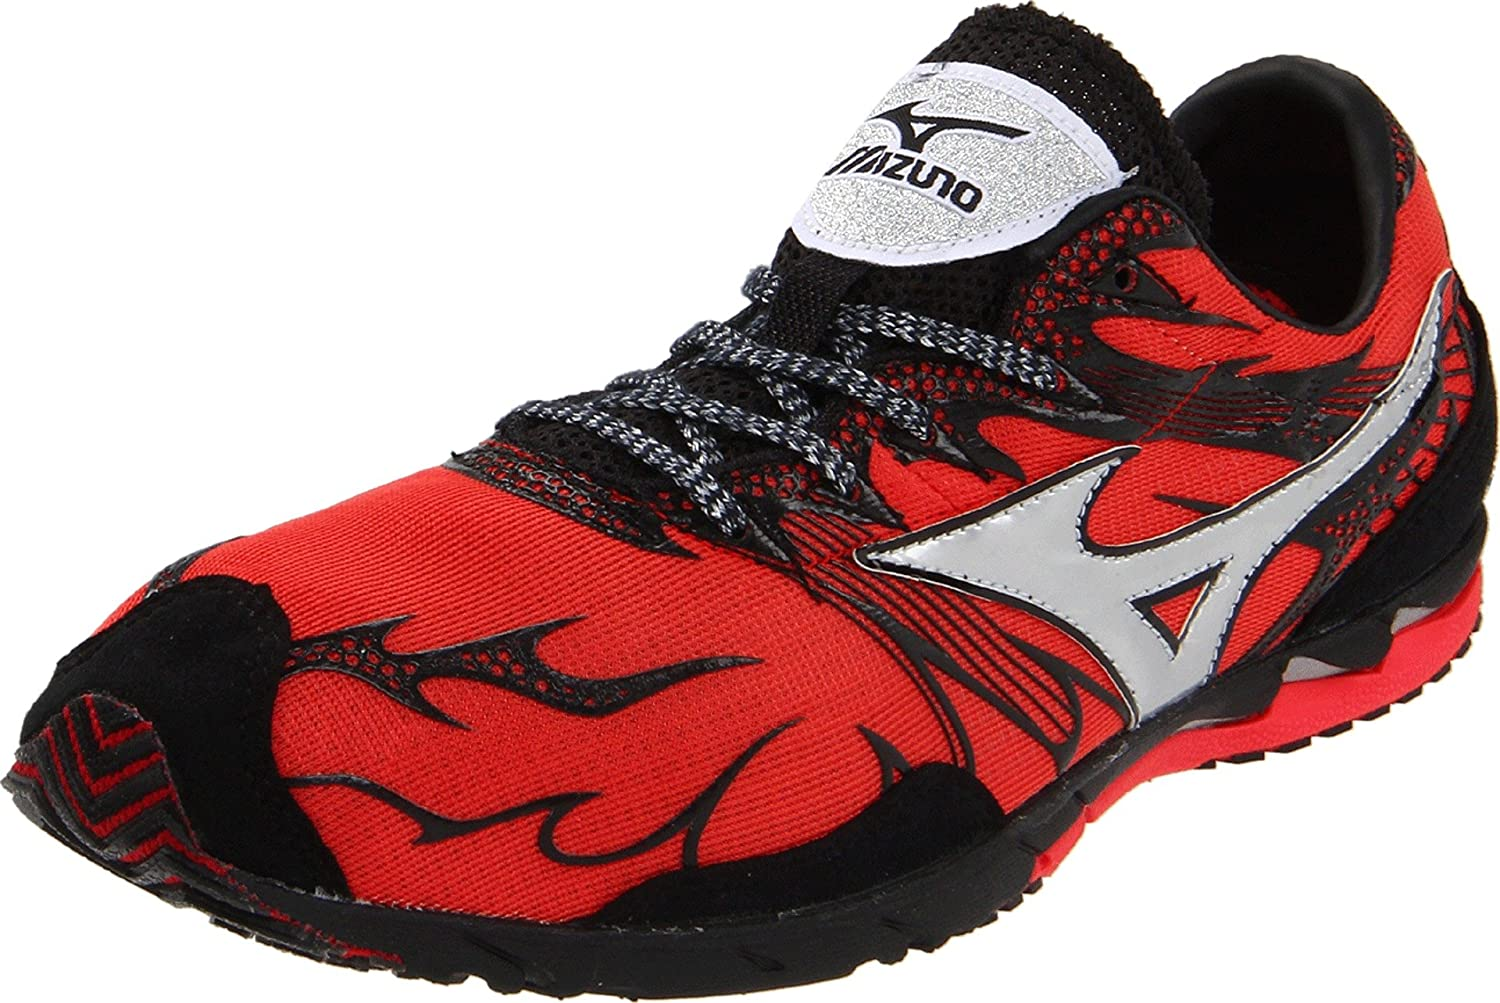 Mizuno Unisex Wave Universe 4 Max 86% OFF Running Shoe OFFicial store